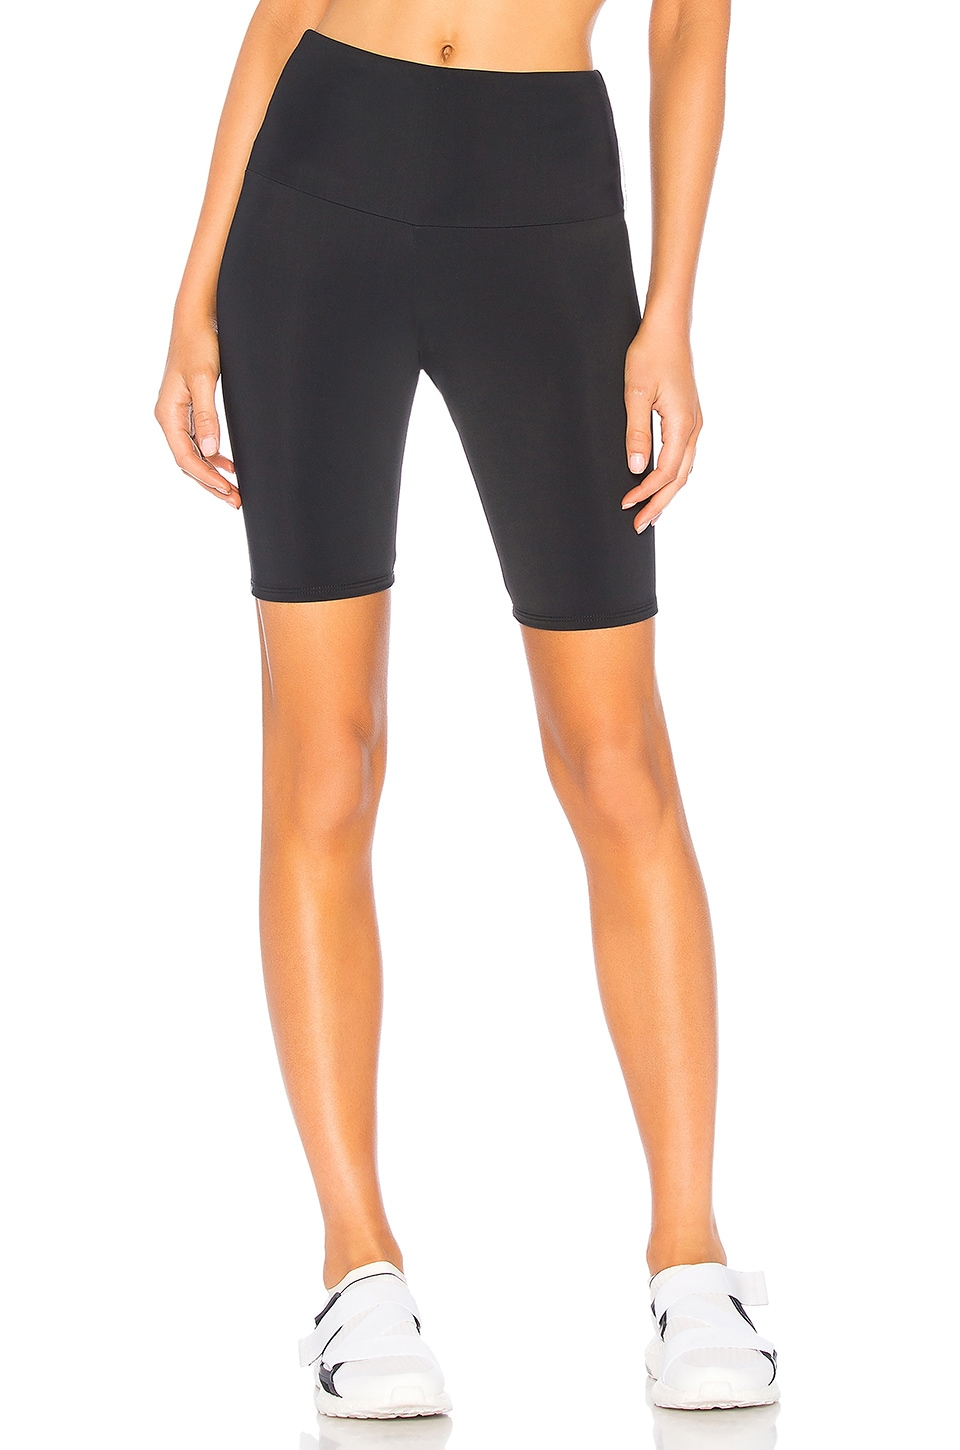 High Rise Bike Short             onzie                                                                                                       CA$ 74.43 5